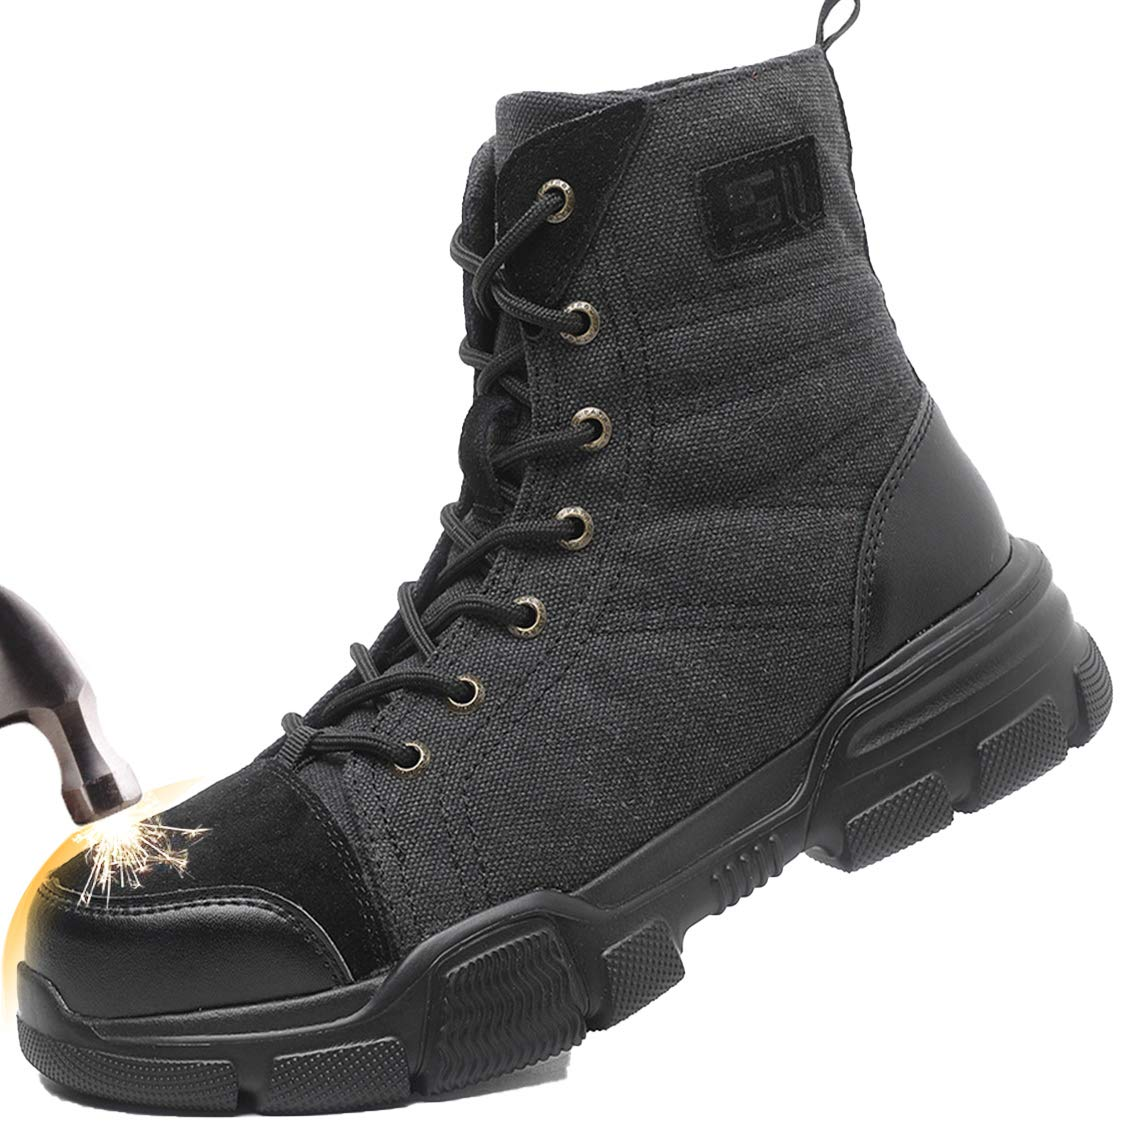 SUADEX Steel Toe Boots for Men Military Work Boots Indestructible Work Shoes for Women Athletic Safety Shoes Composite Toe